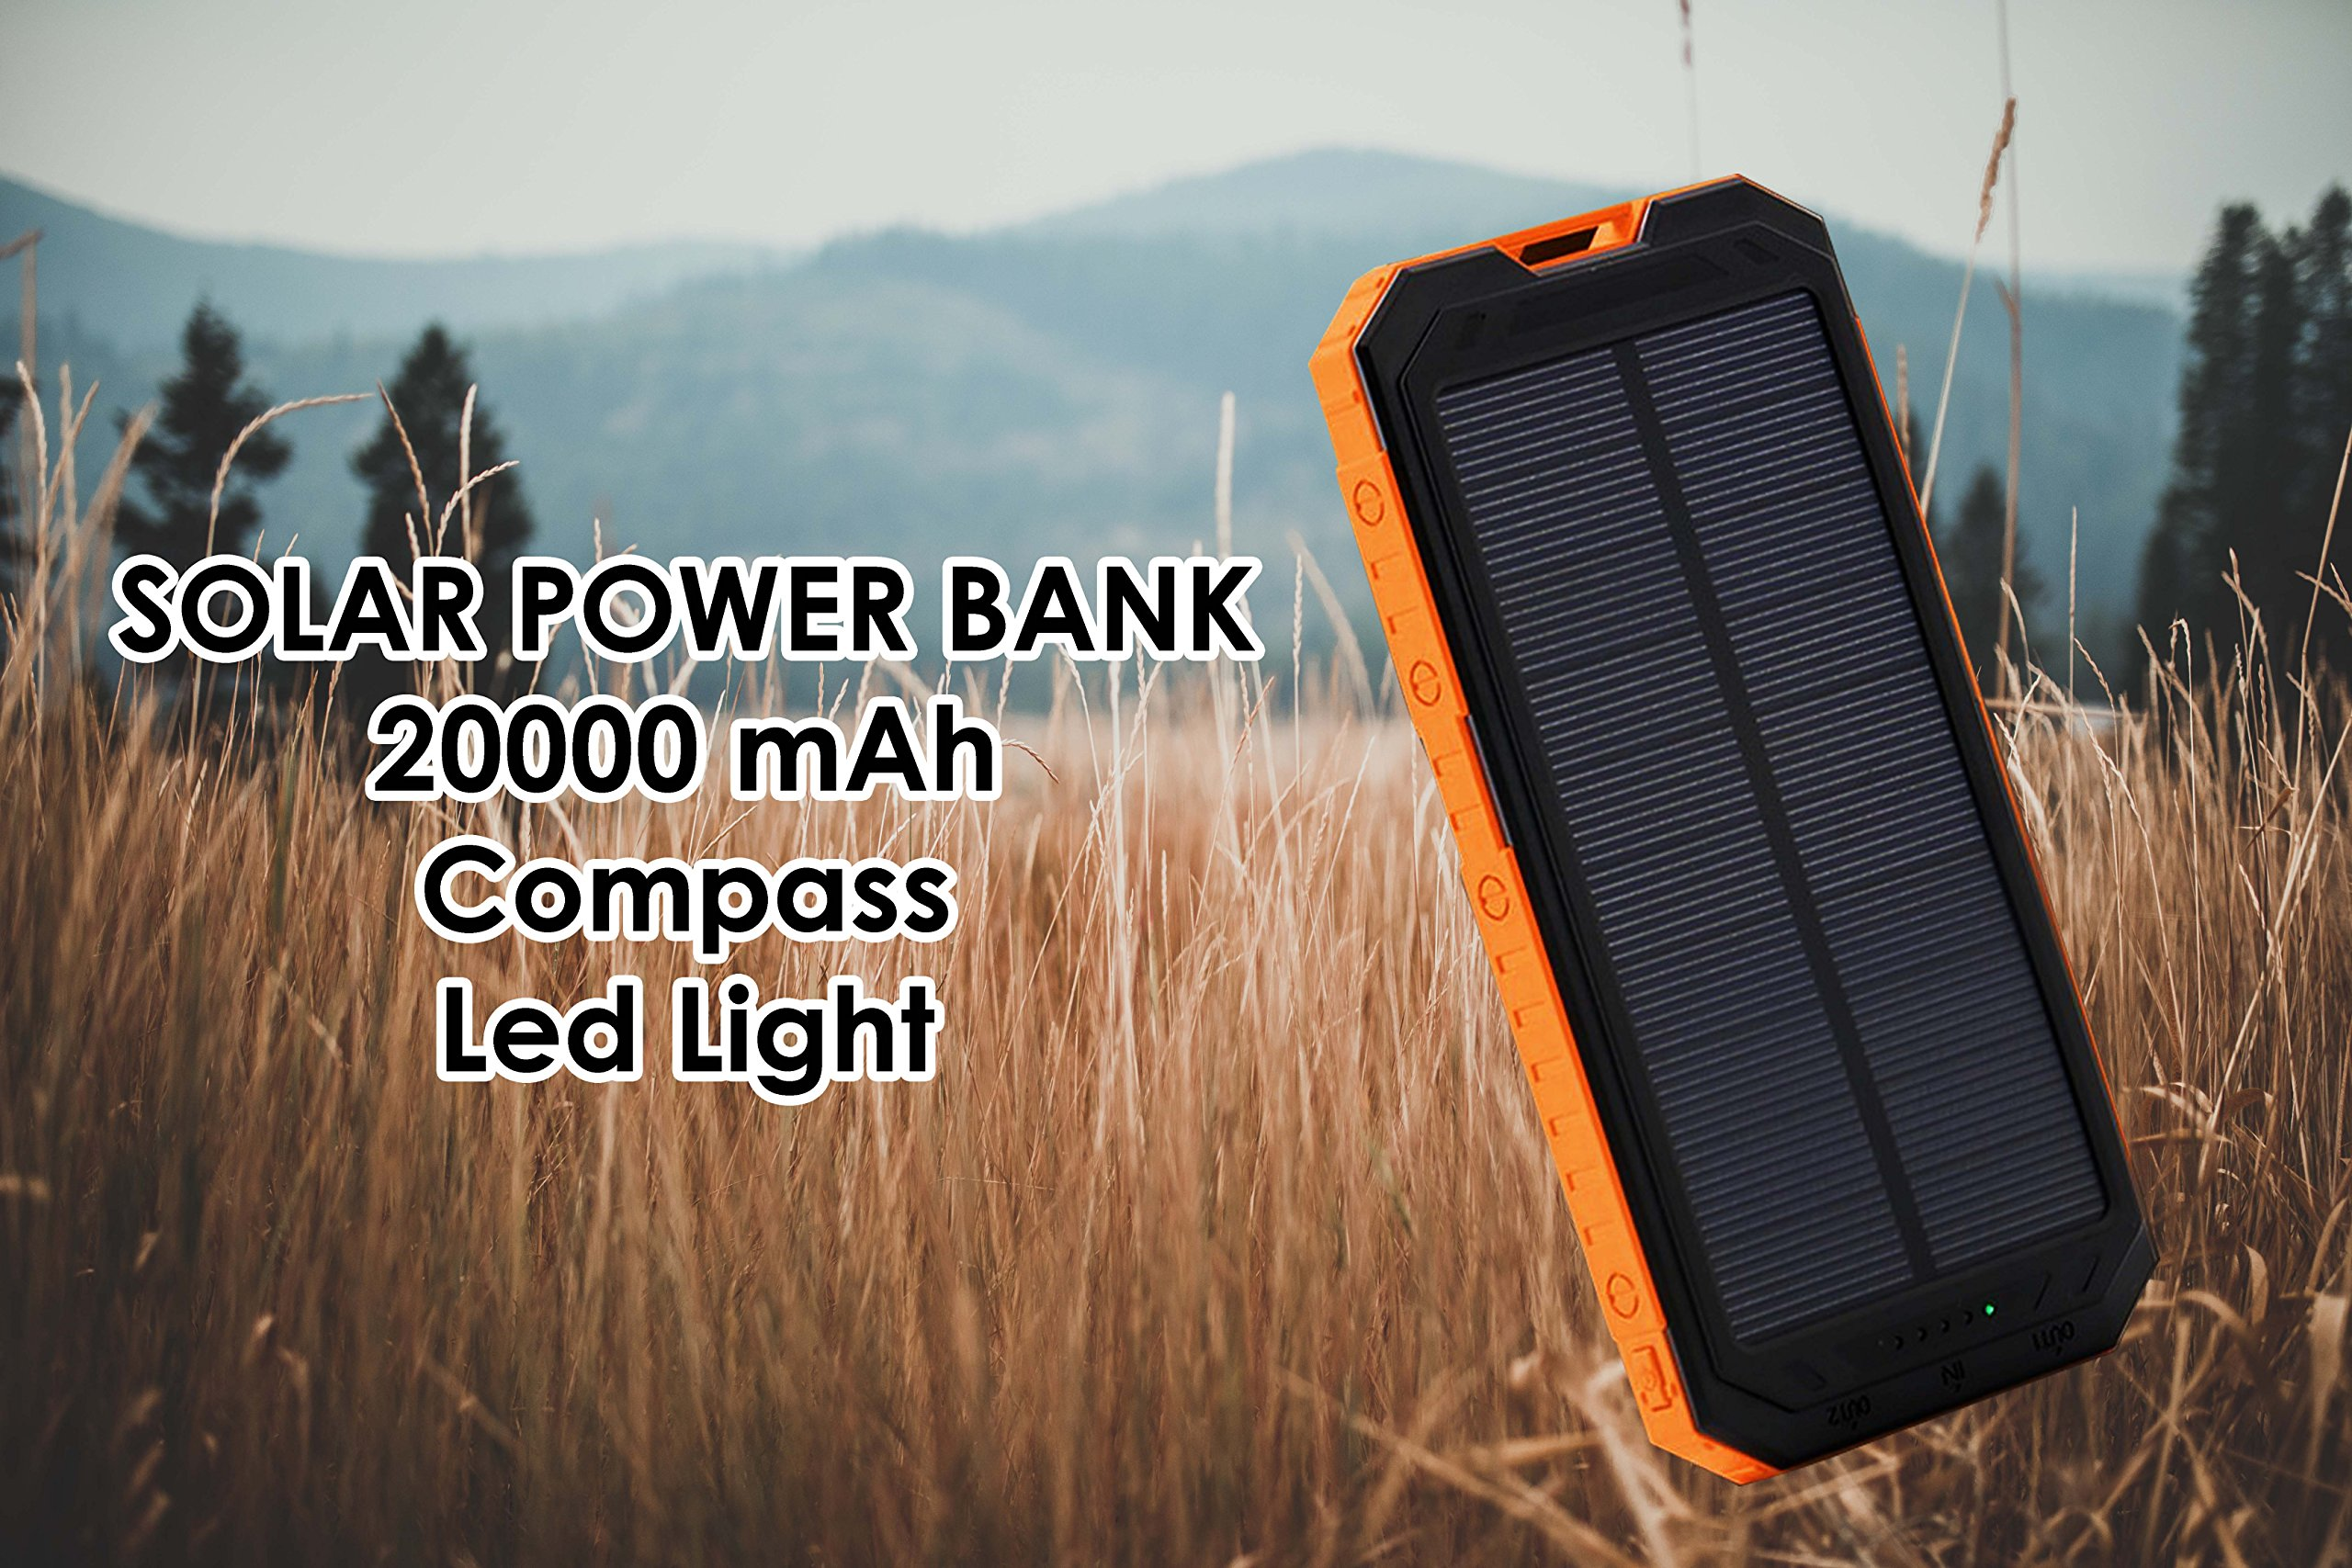 Solar Power Bank Dual Portable Charger PowerBank 20000 mah LED Compass for Android IOS Laptops